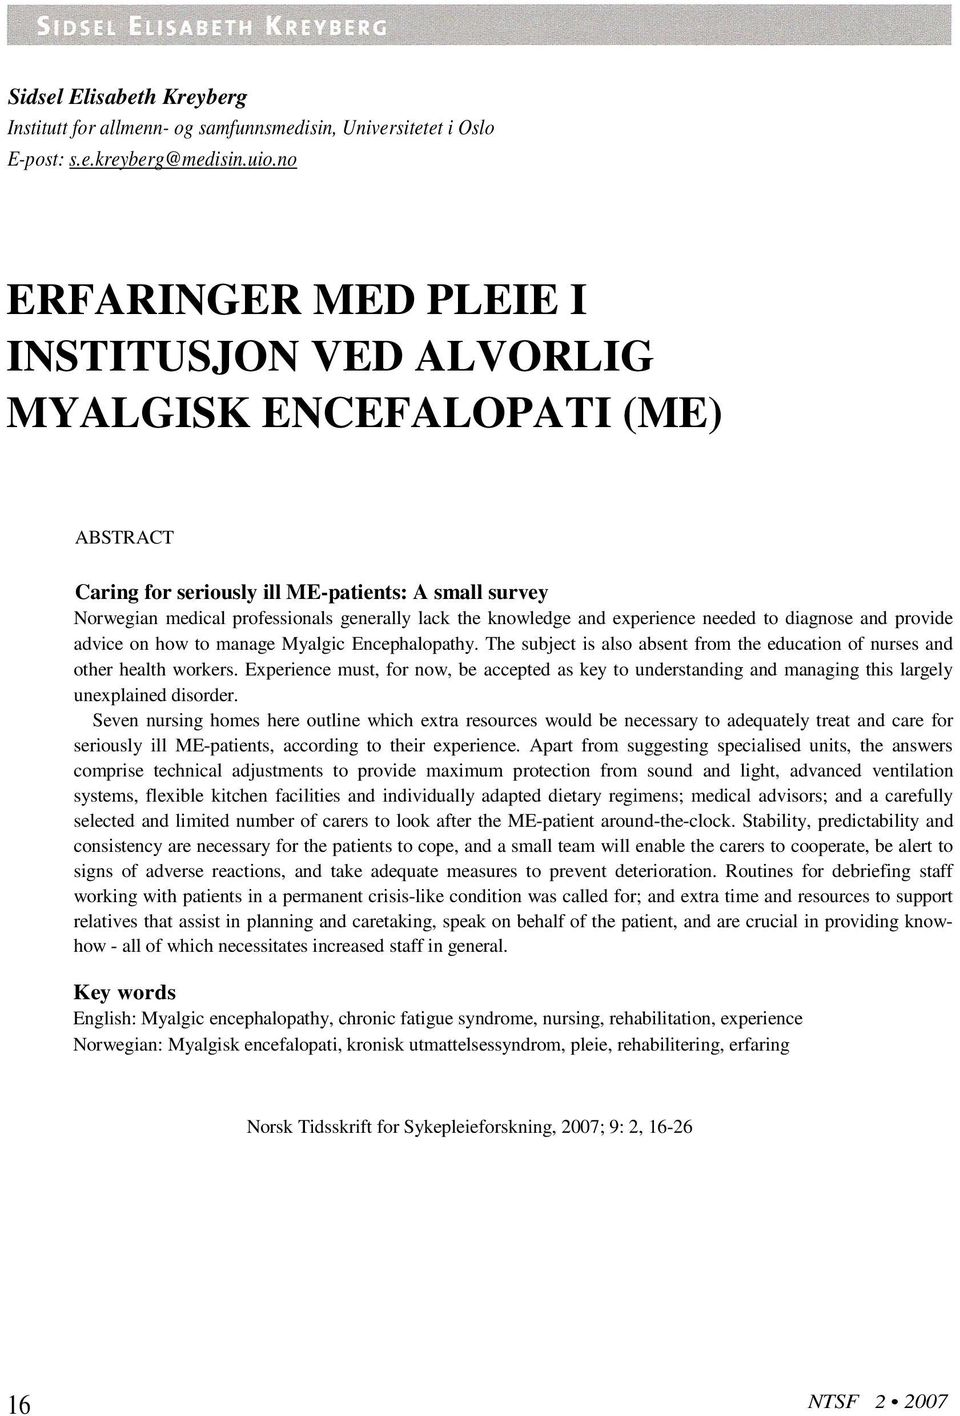 knowledge and experience needed to diagnose and provide advice on how to manage Myalgic Encephalopathy. The subject is also absent from the education of nurses and other health workers.